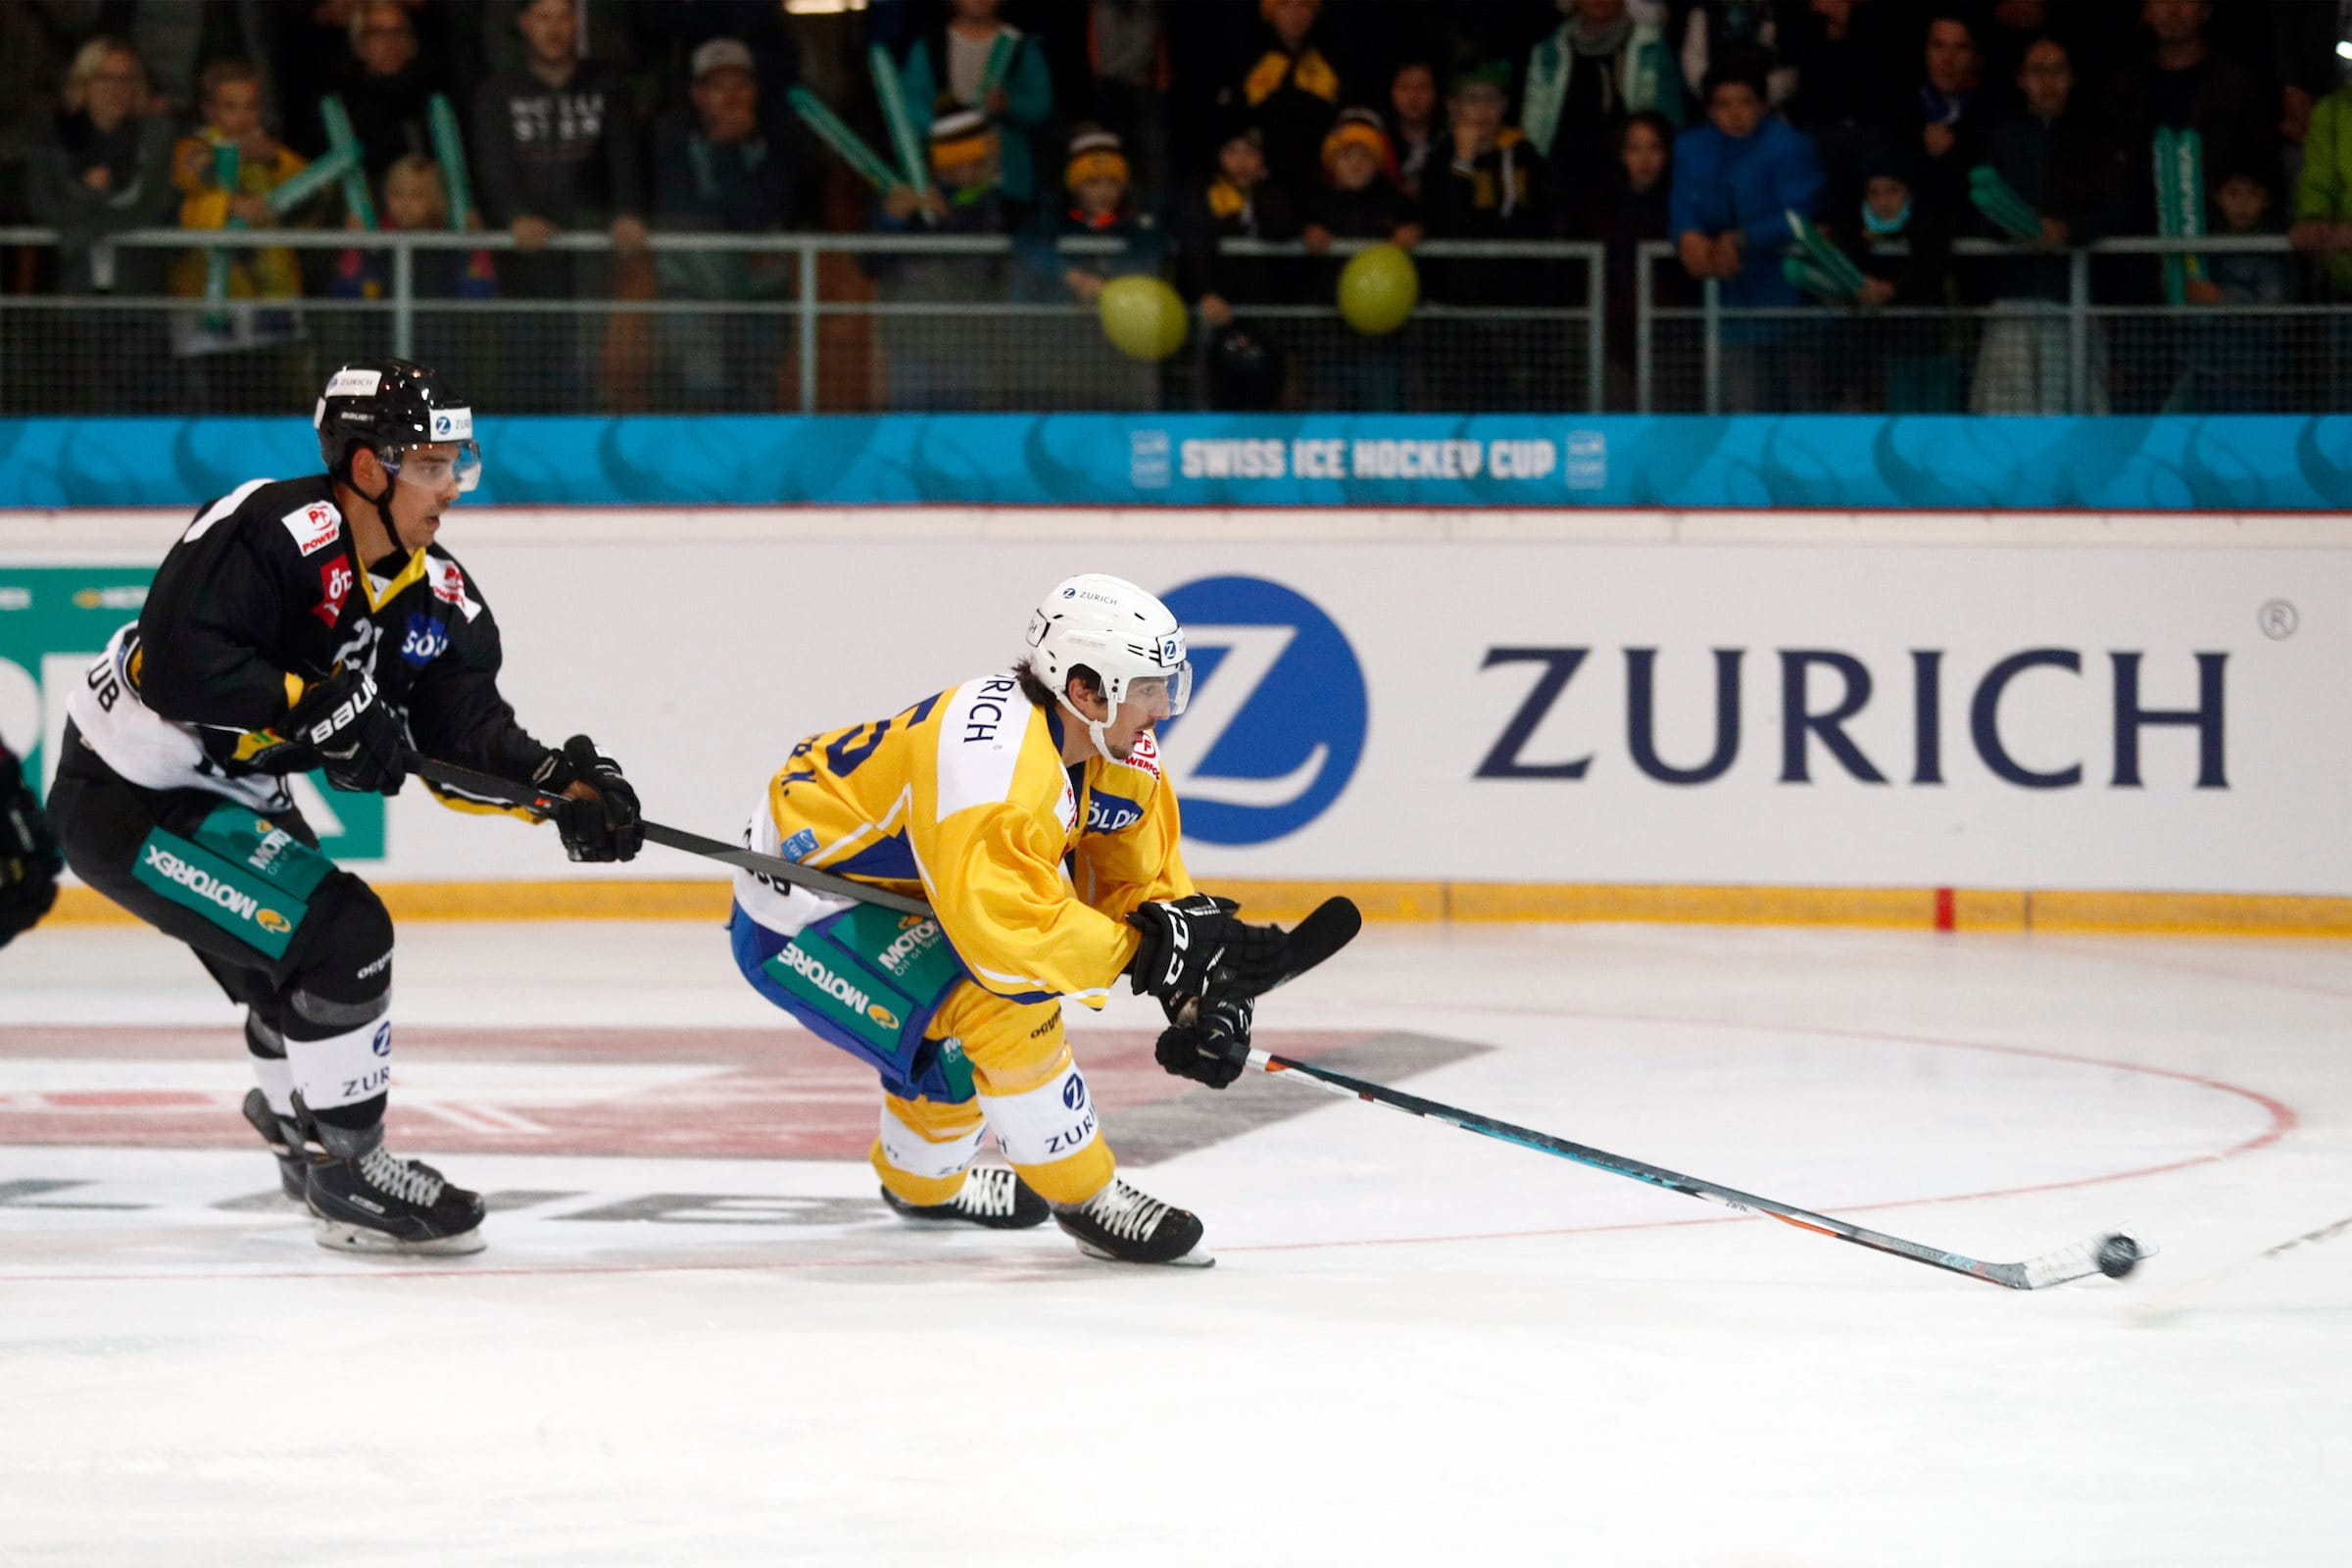 Il nostro impegno-SwissIceHockeyCup